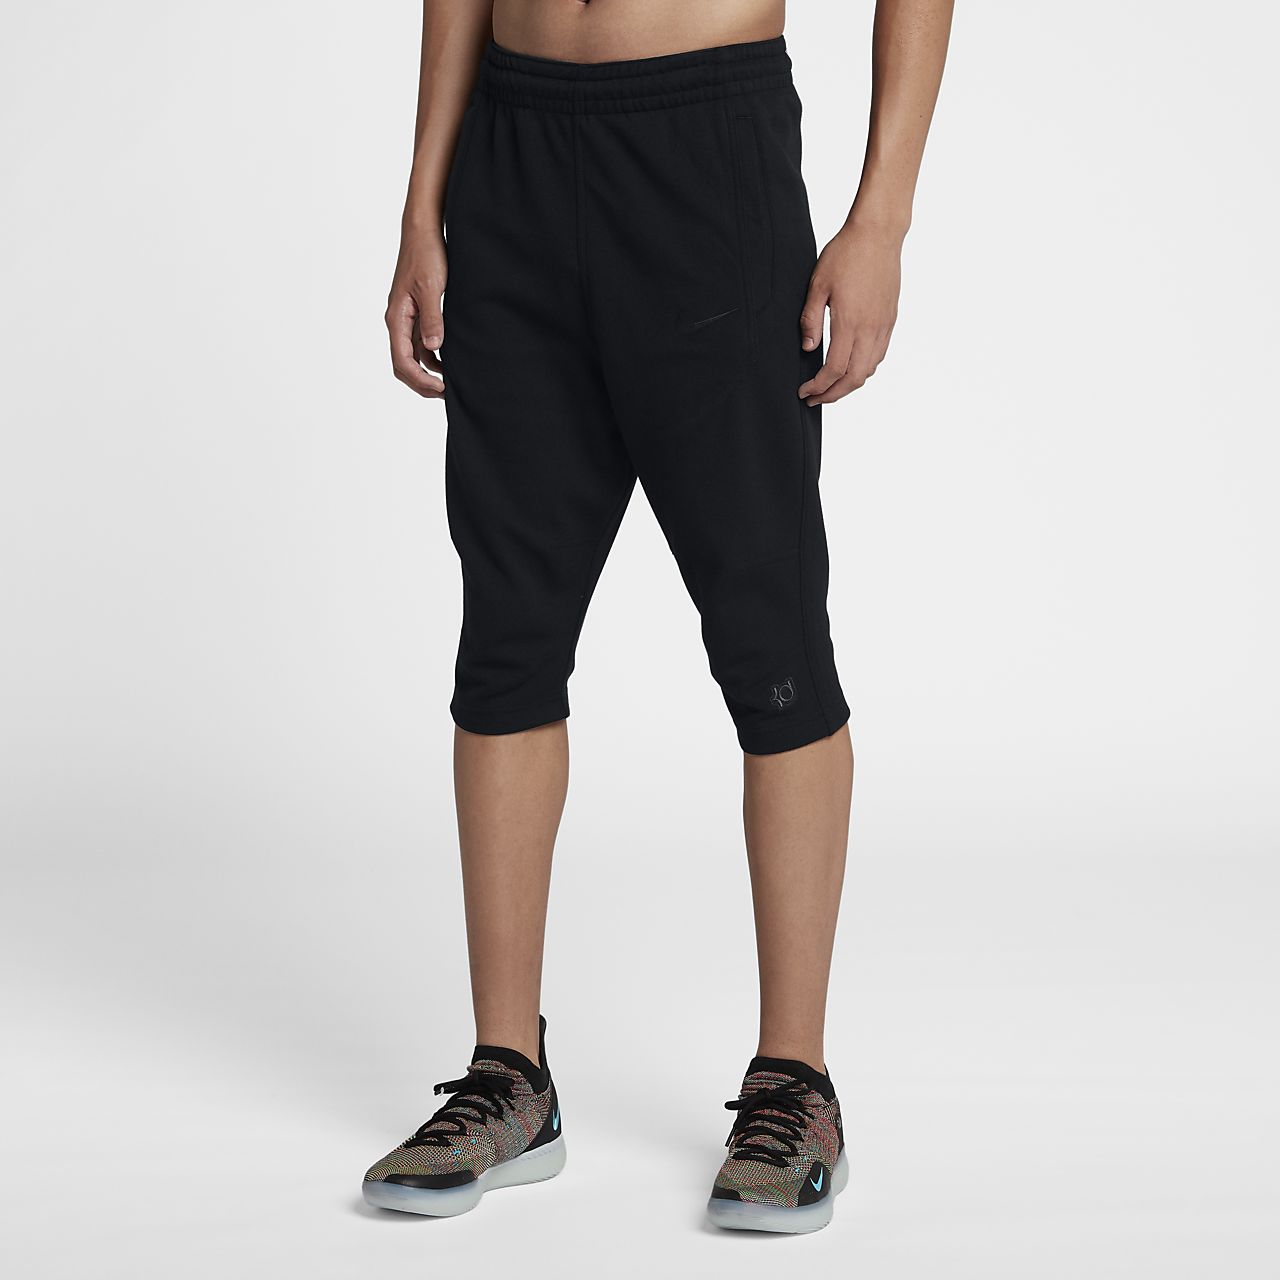 Nike KD Men's Fleece Basketball Shorts